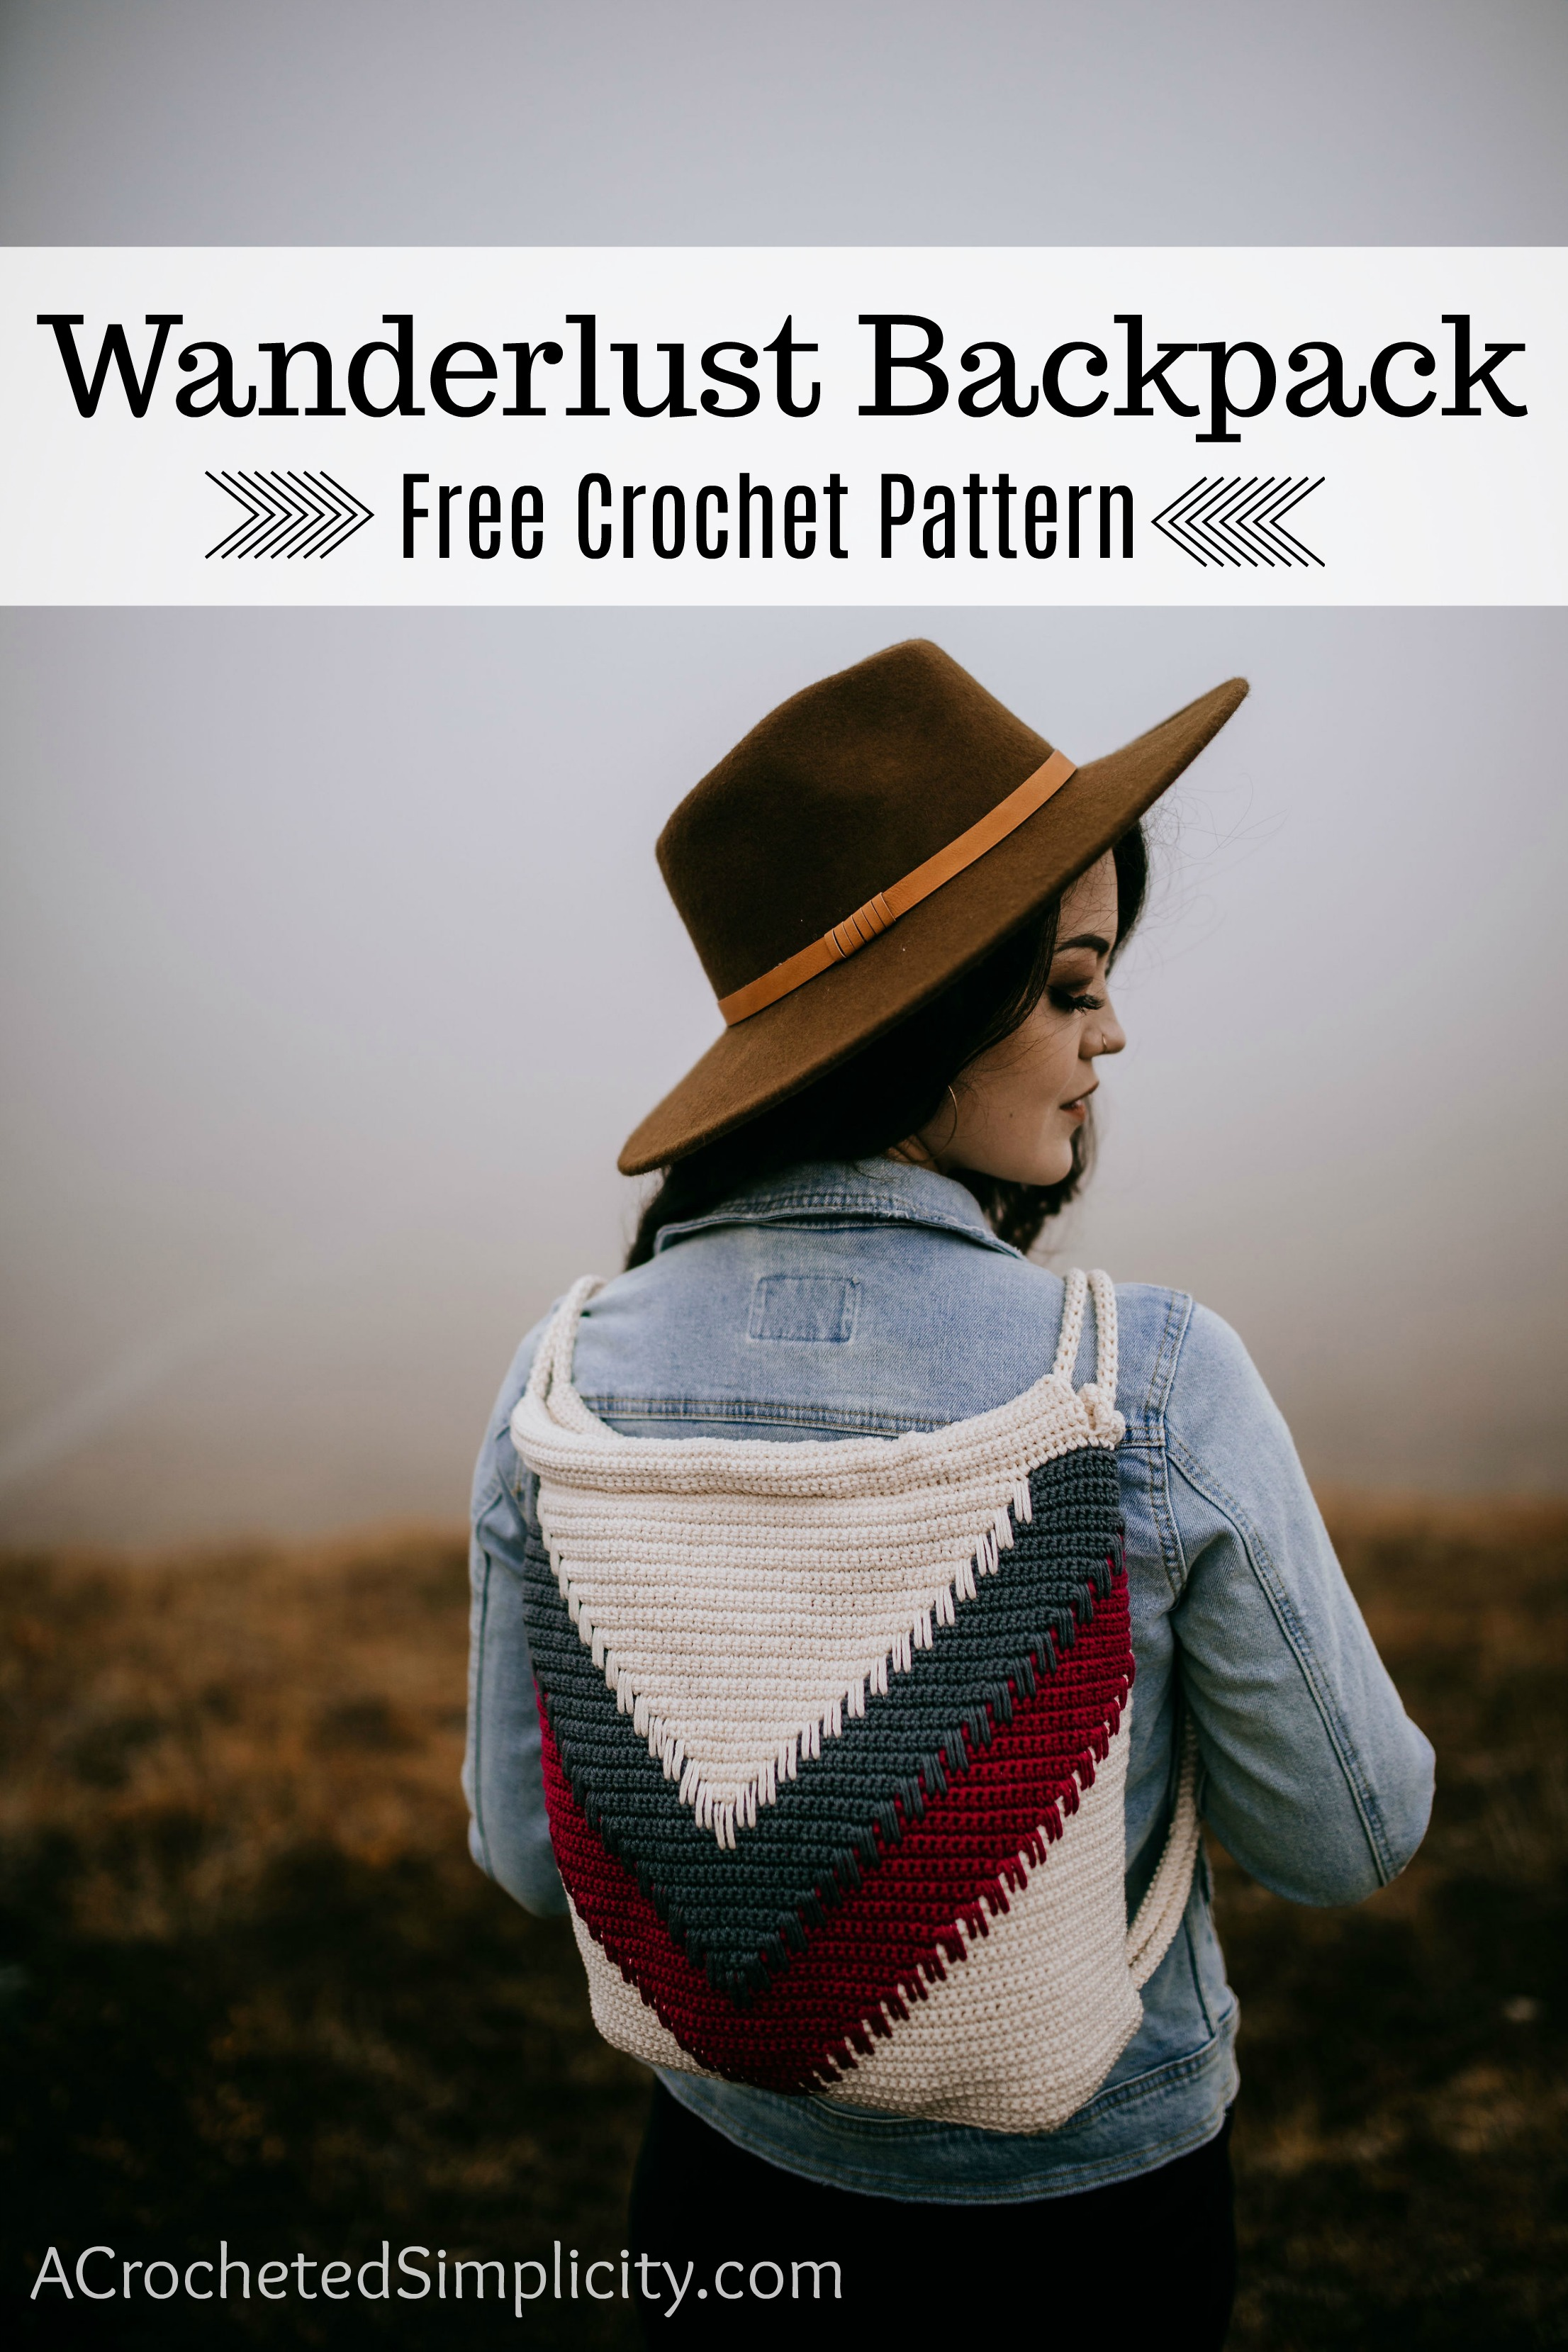 Wanderlust Crochet Backpack - Free Crochet Backpack Pattern by A Crocheted Simplicity #crochetbag #crochetbackpack #crochetchevron #chevronbackpack #handmadebackpack #freecrochetpattern #crochetbackpackpattern #chevron #spikestitch #crochetspikestitch